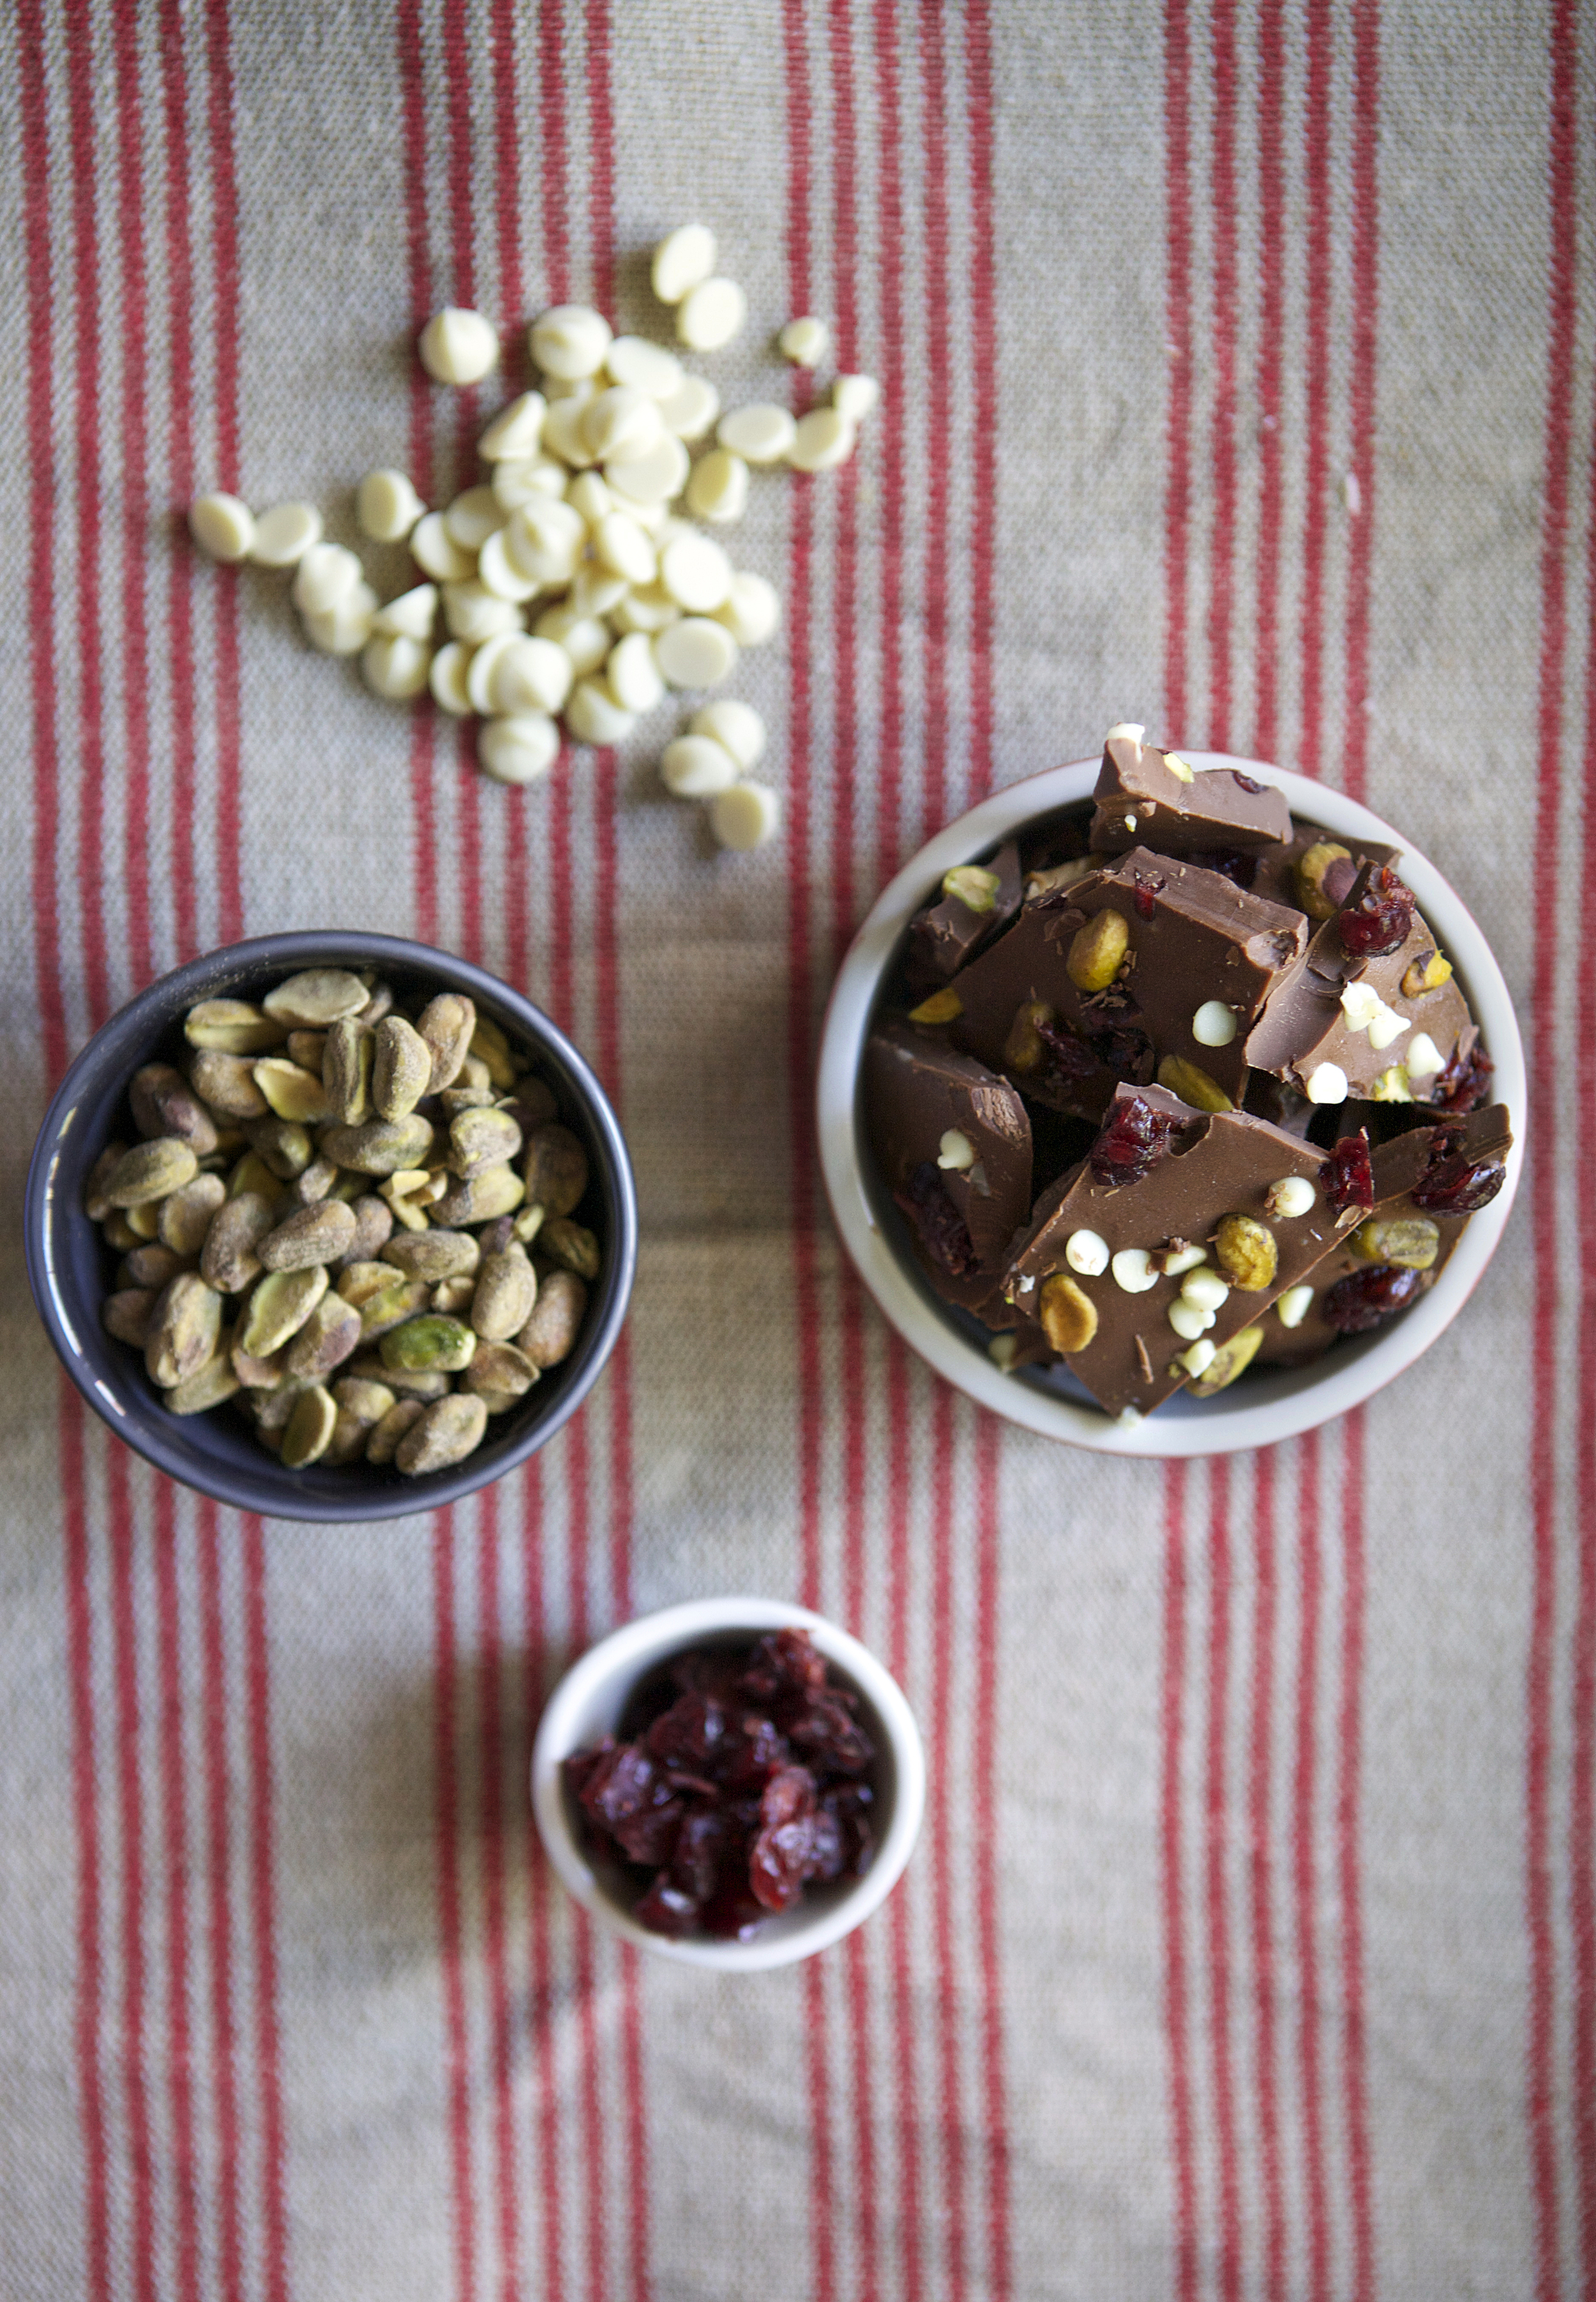 Cranberry & Pistachio Bark with Mini White Chocolate Chips because why not!